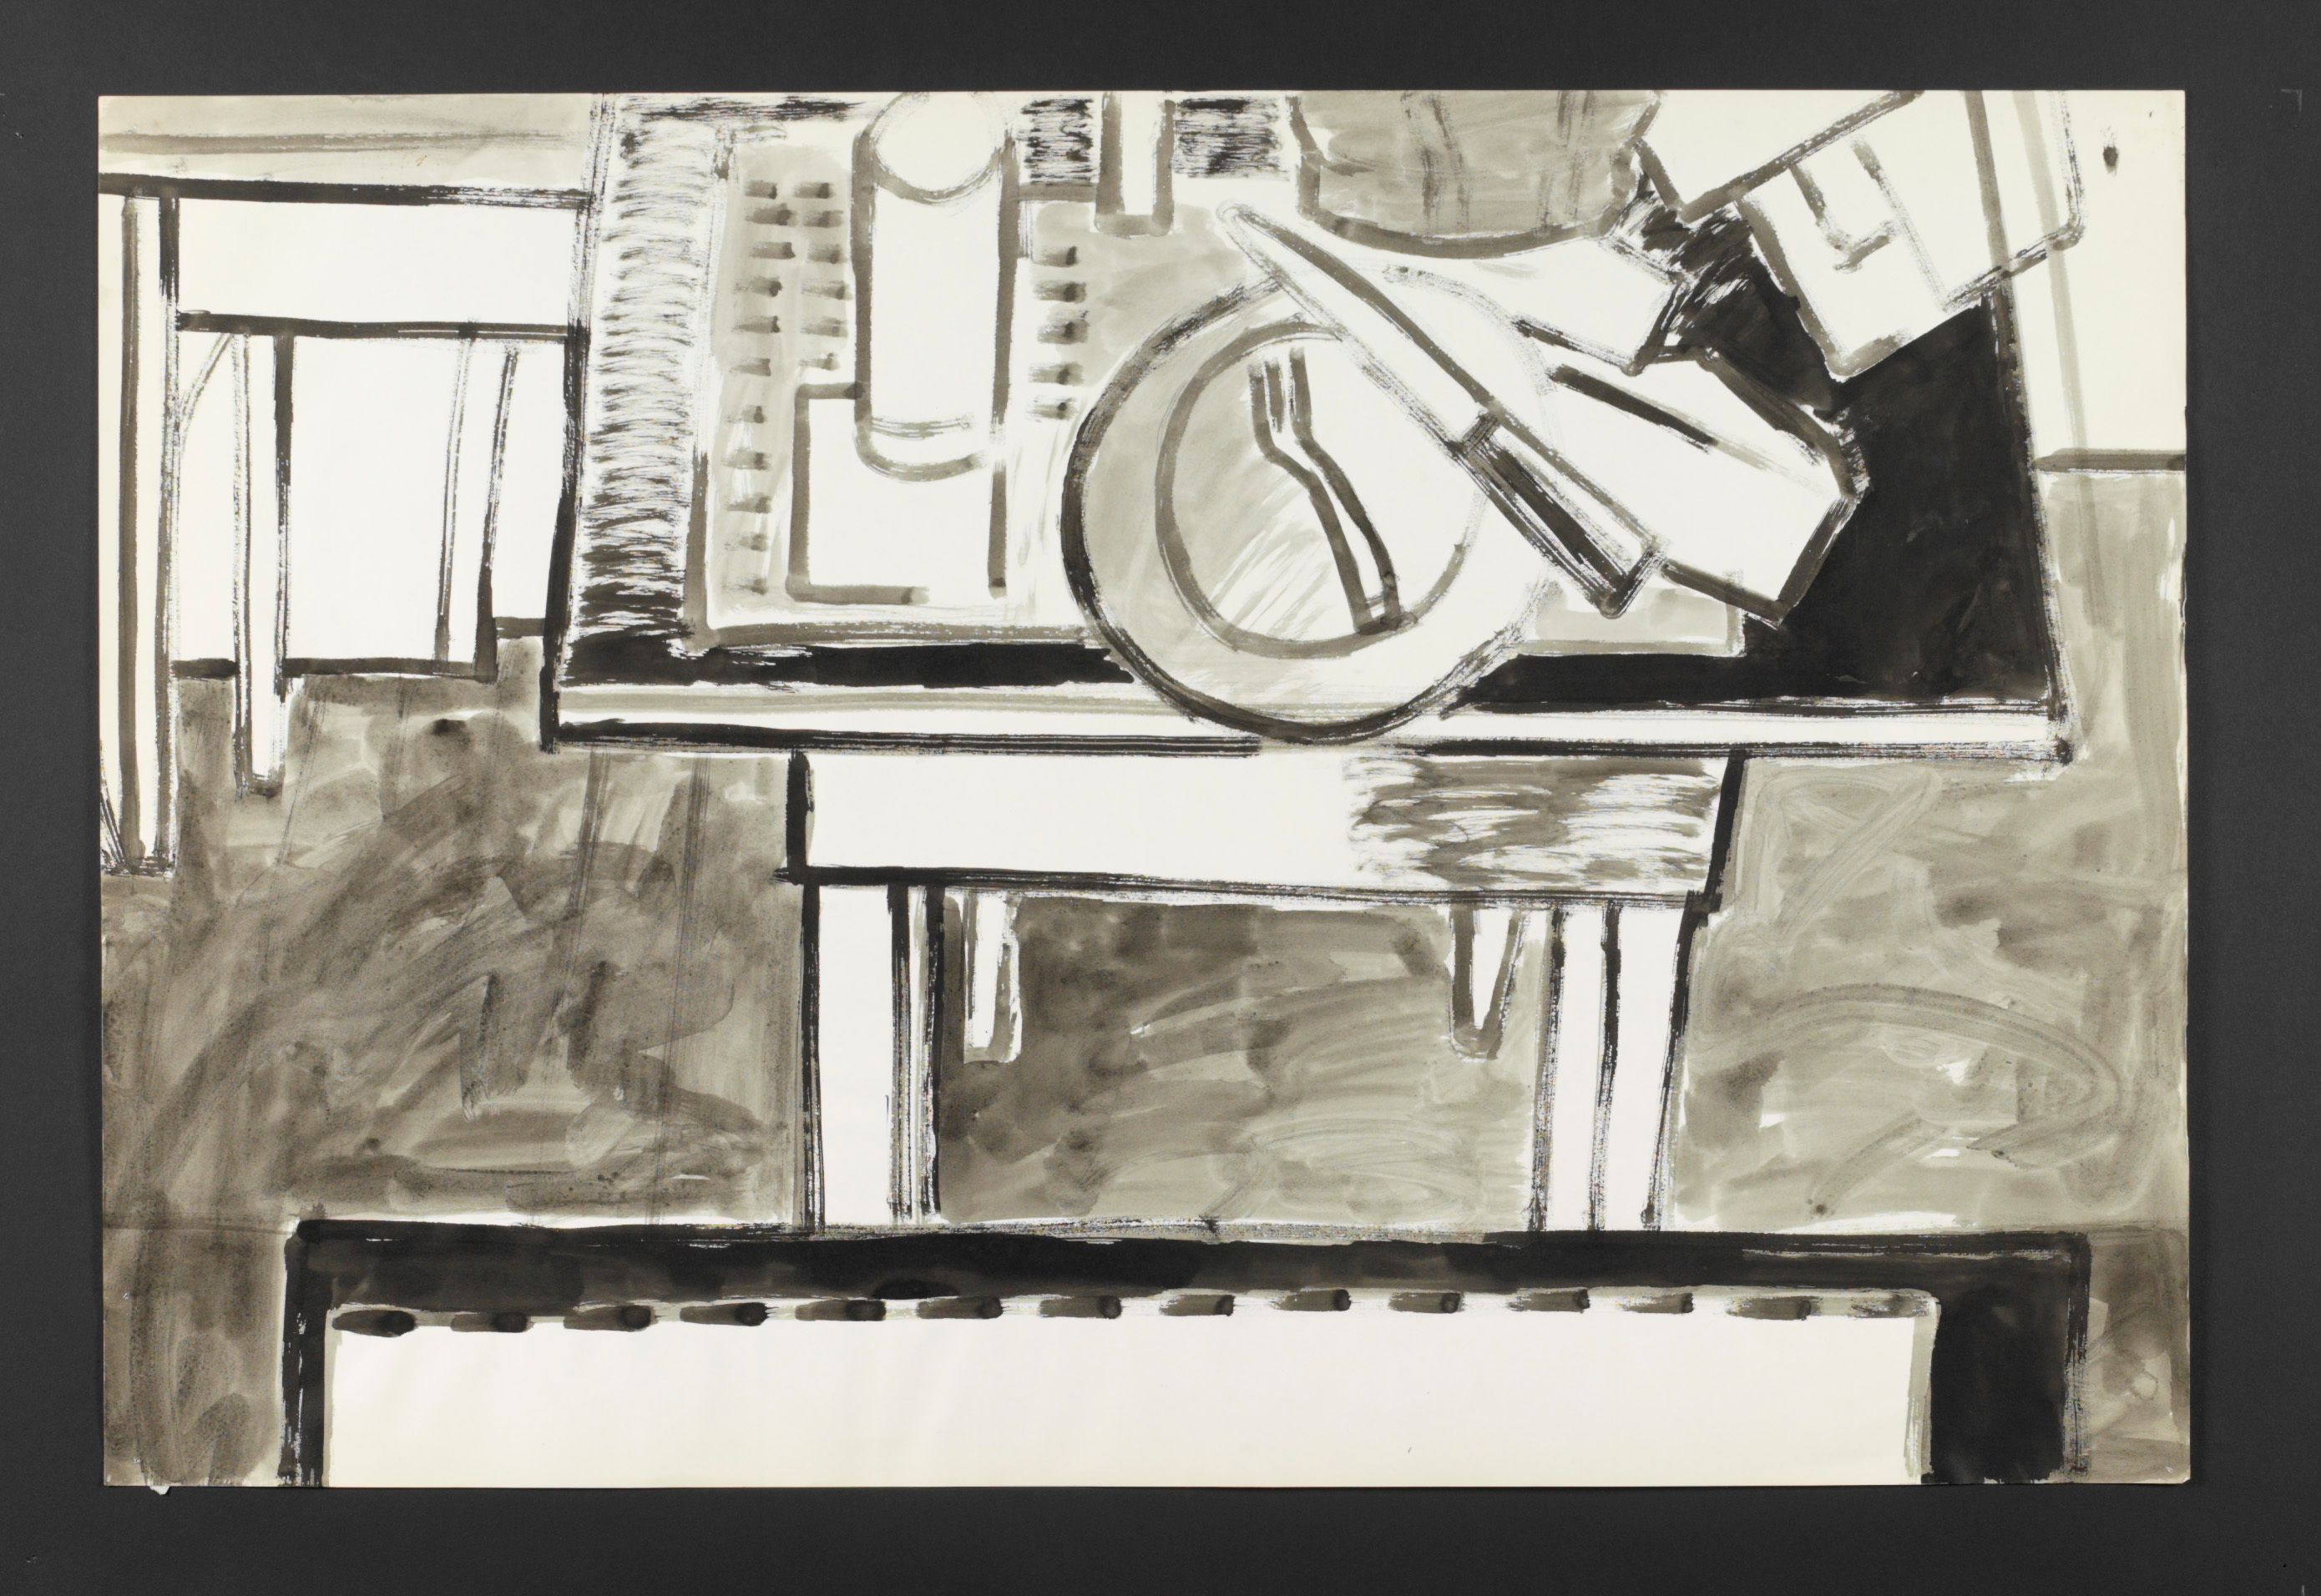 "STUDIO INTERIOR w DRAWING and DINING TABLES                    1973 Berkeley , 24 x 36"" , ink on paper"